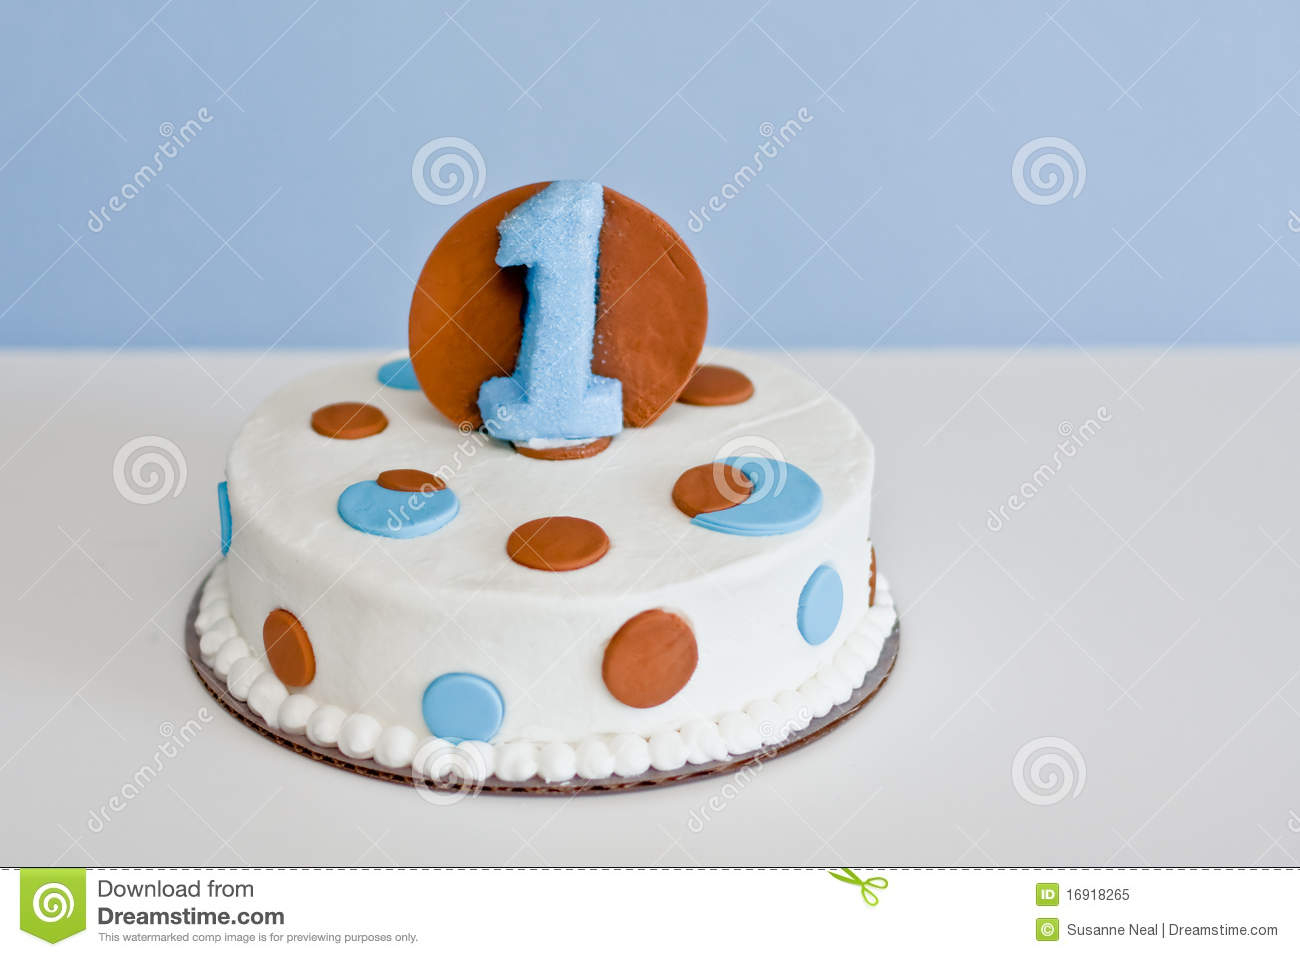 Birthday Cake For 1 Year Old Birthday Cake For One Year Old Ba Stock Image Image Of Ribbons